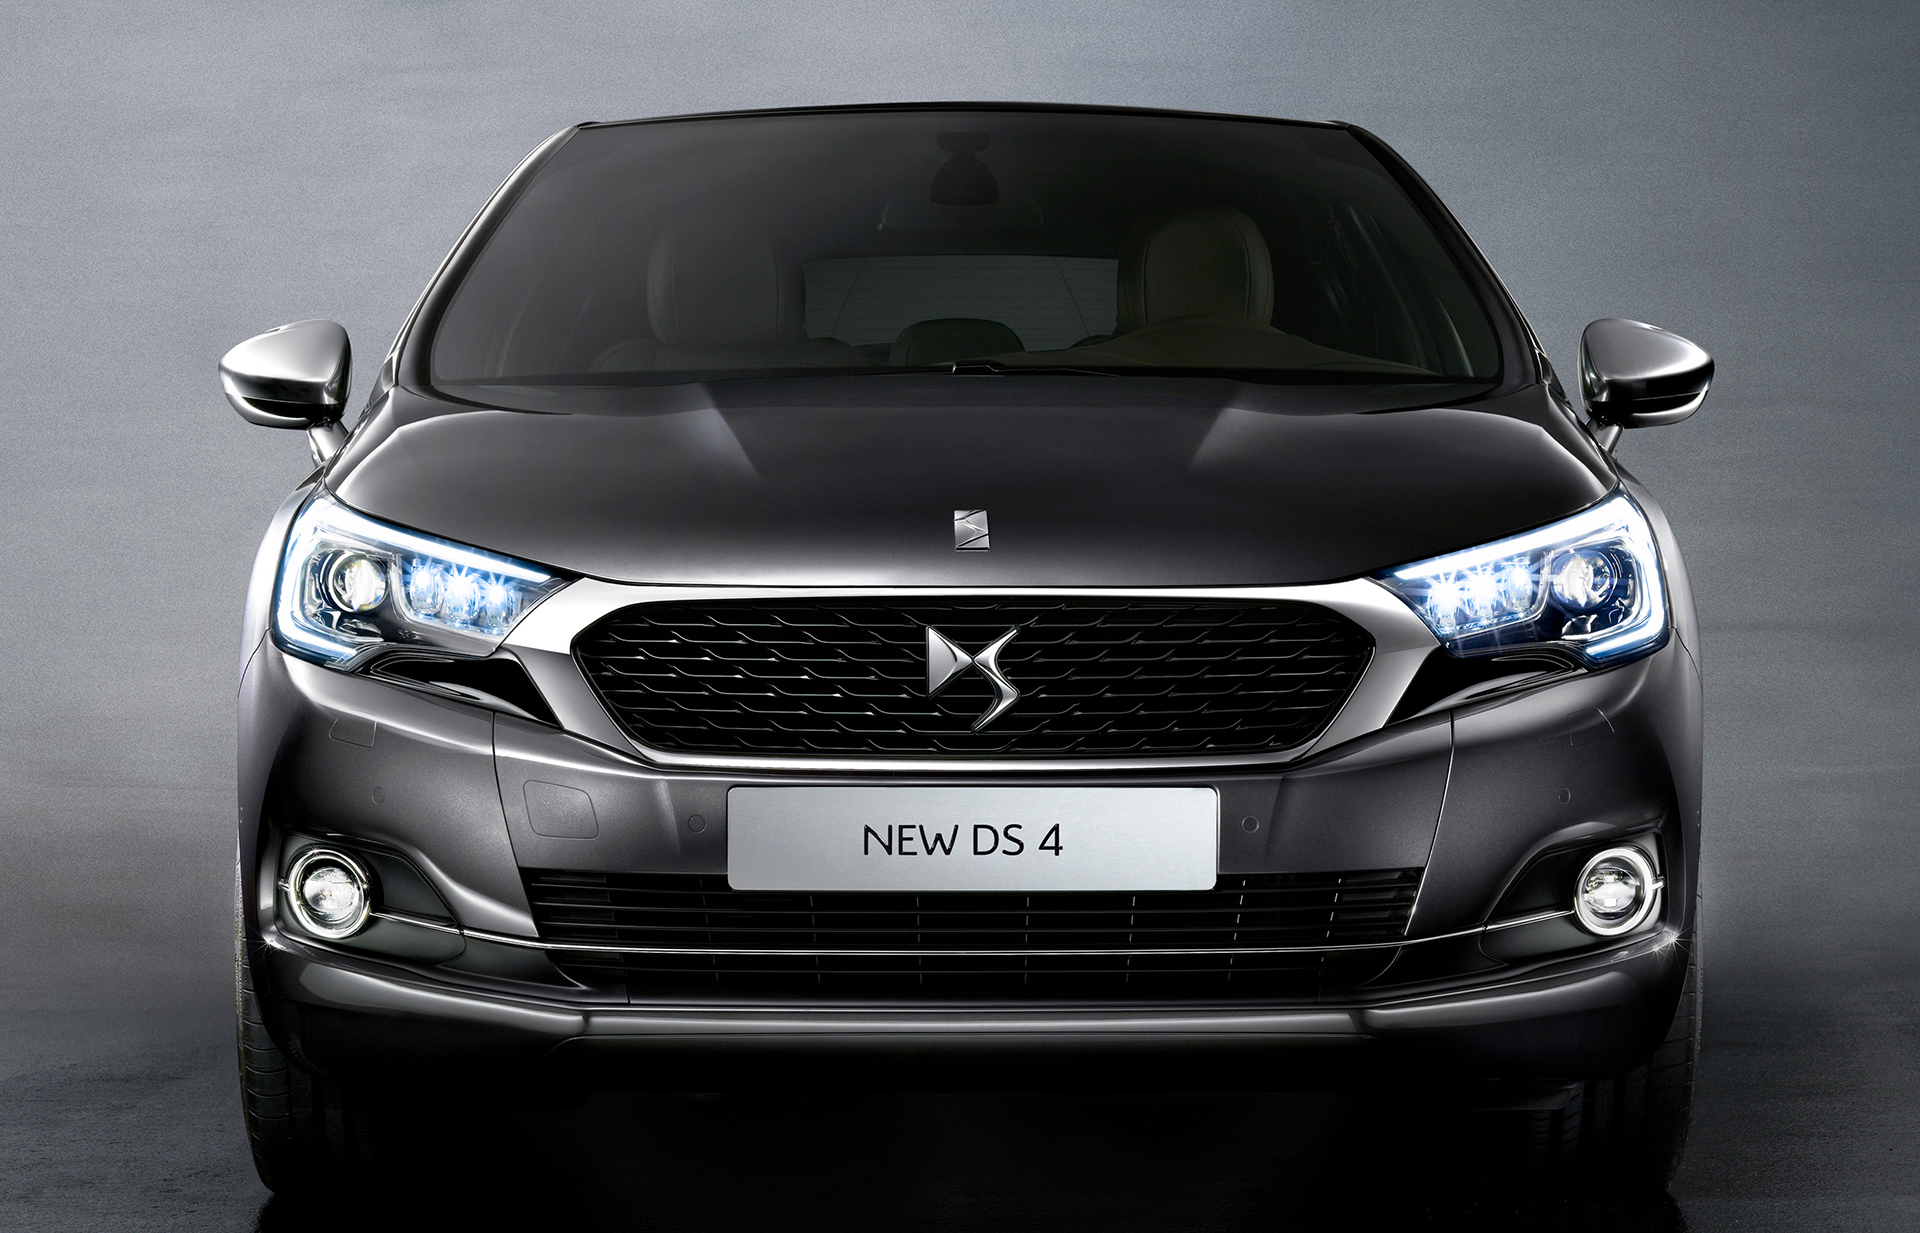 New DS 4 - DS Automobiles - 2015 - face avant / front